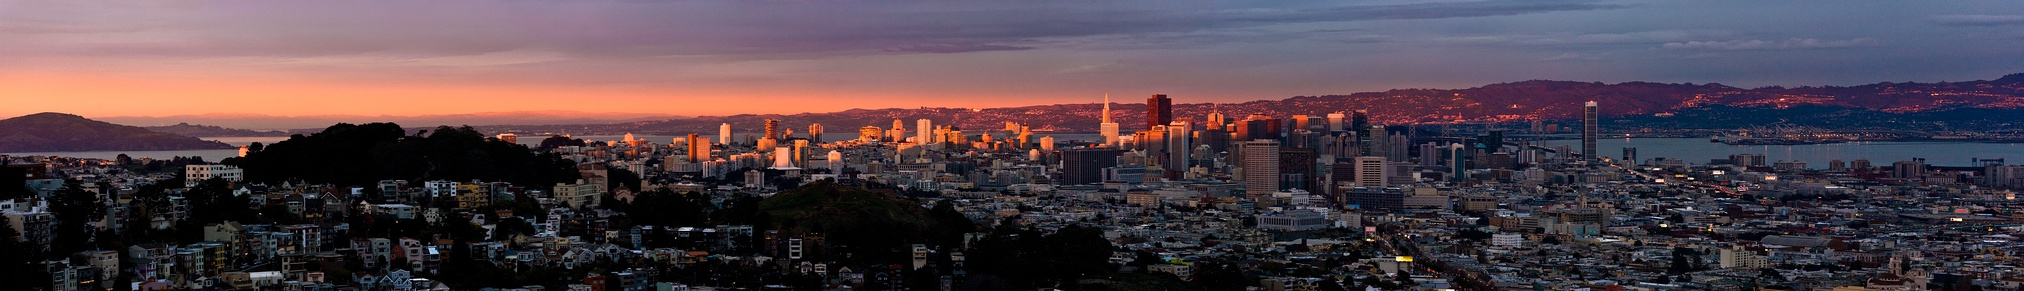 Downtown San Francisco, seen from Twin Peaks at dusk, in December 2009